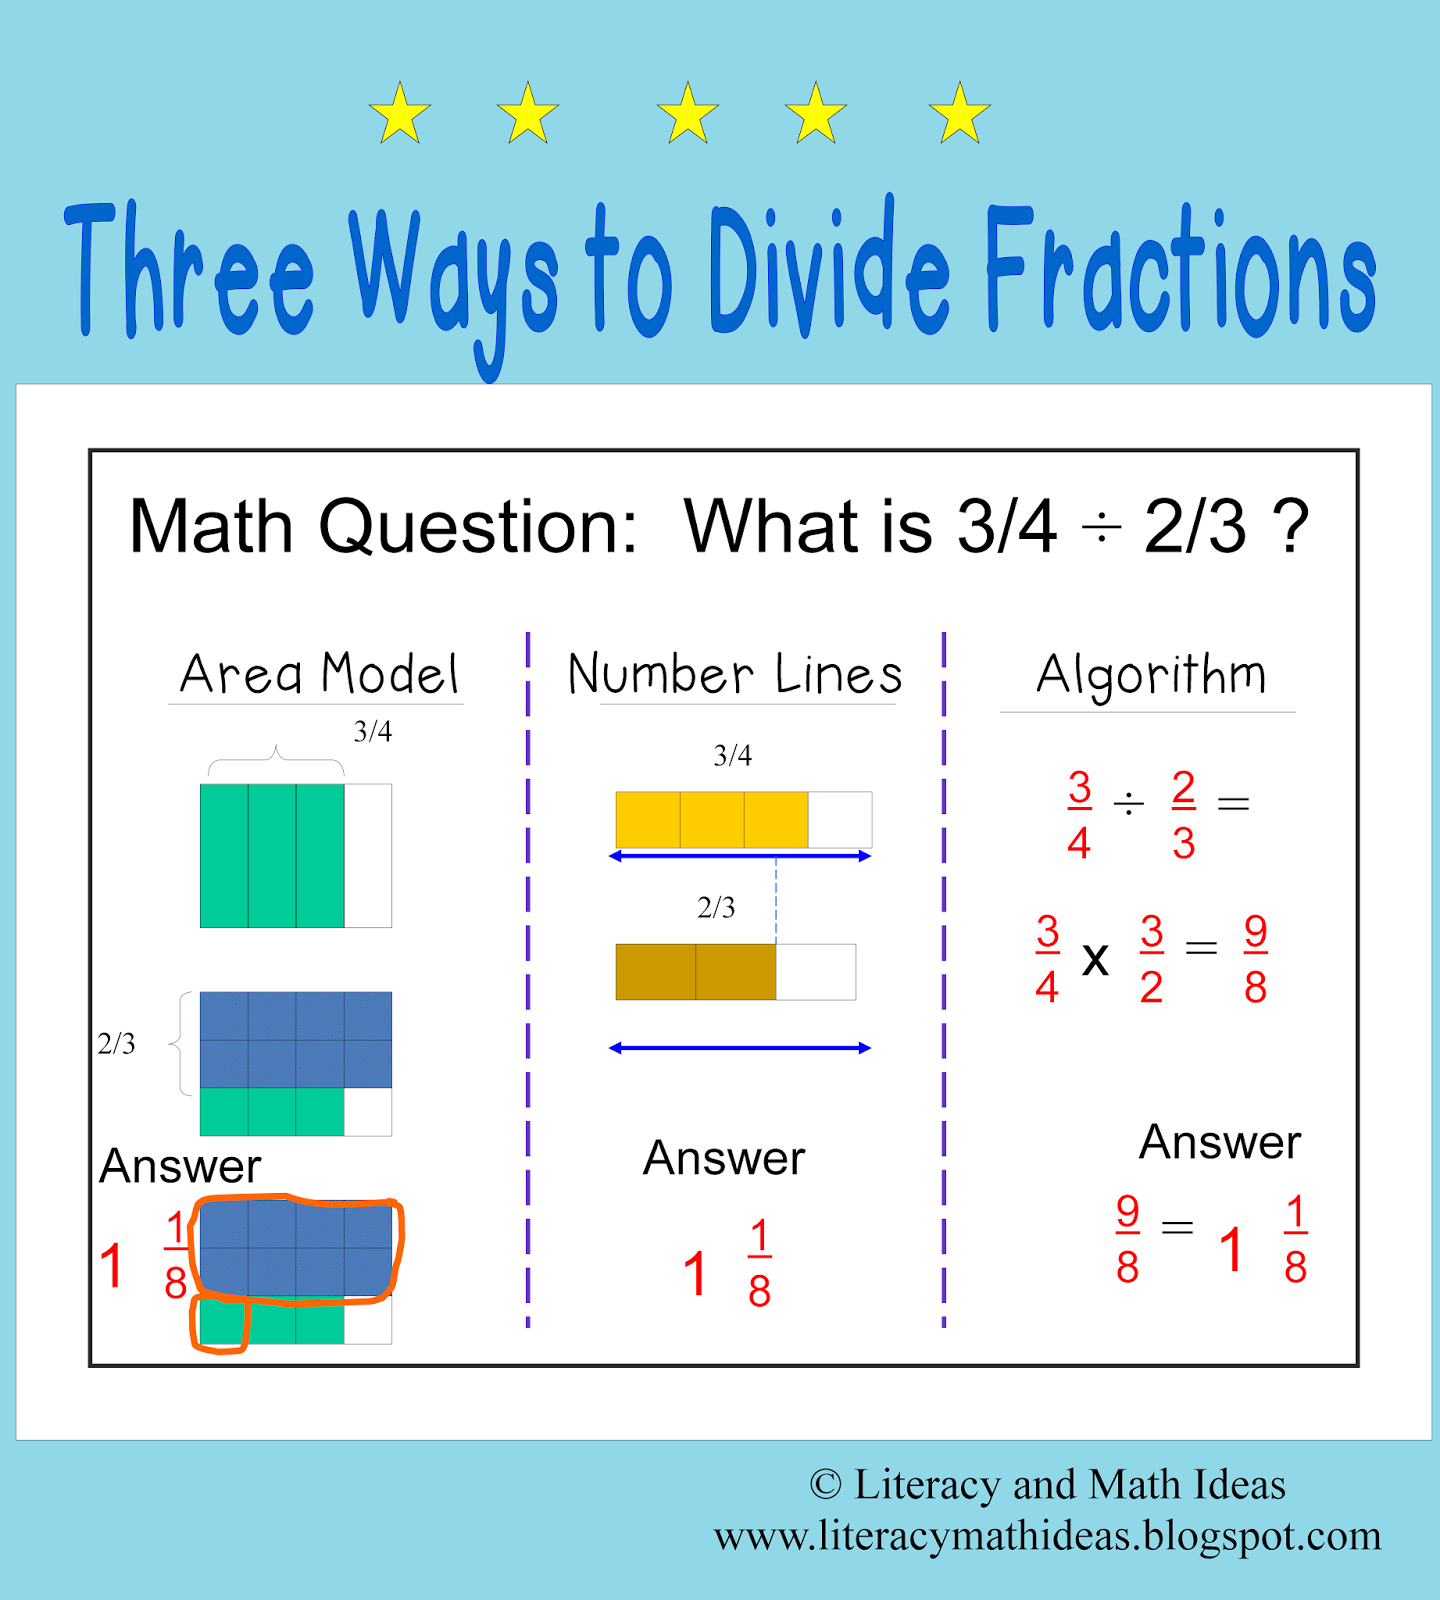 hight resolution of Literacy \u0026 Math Ideas: Three Ways to Divide Fractions   Math fractions